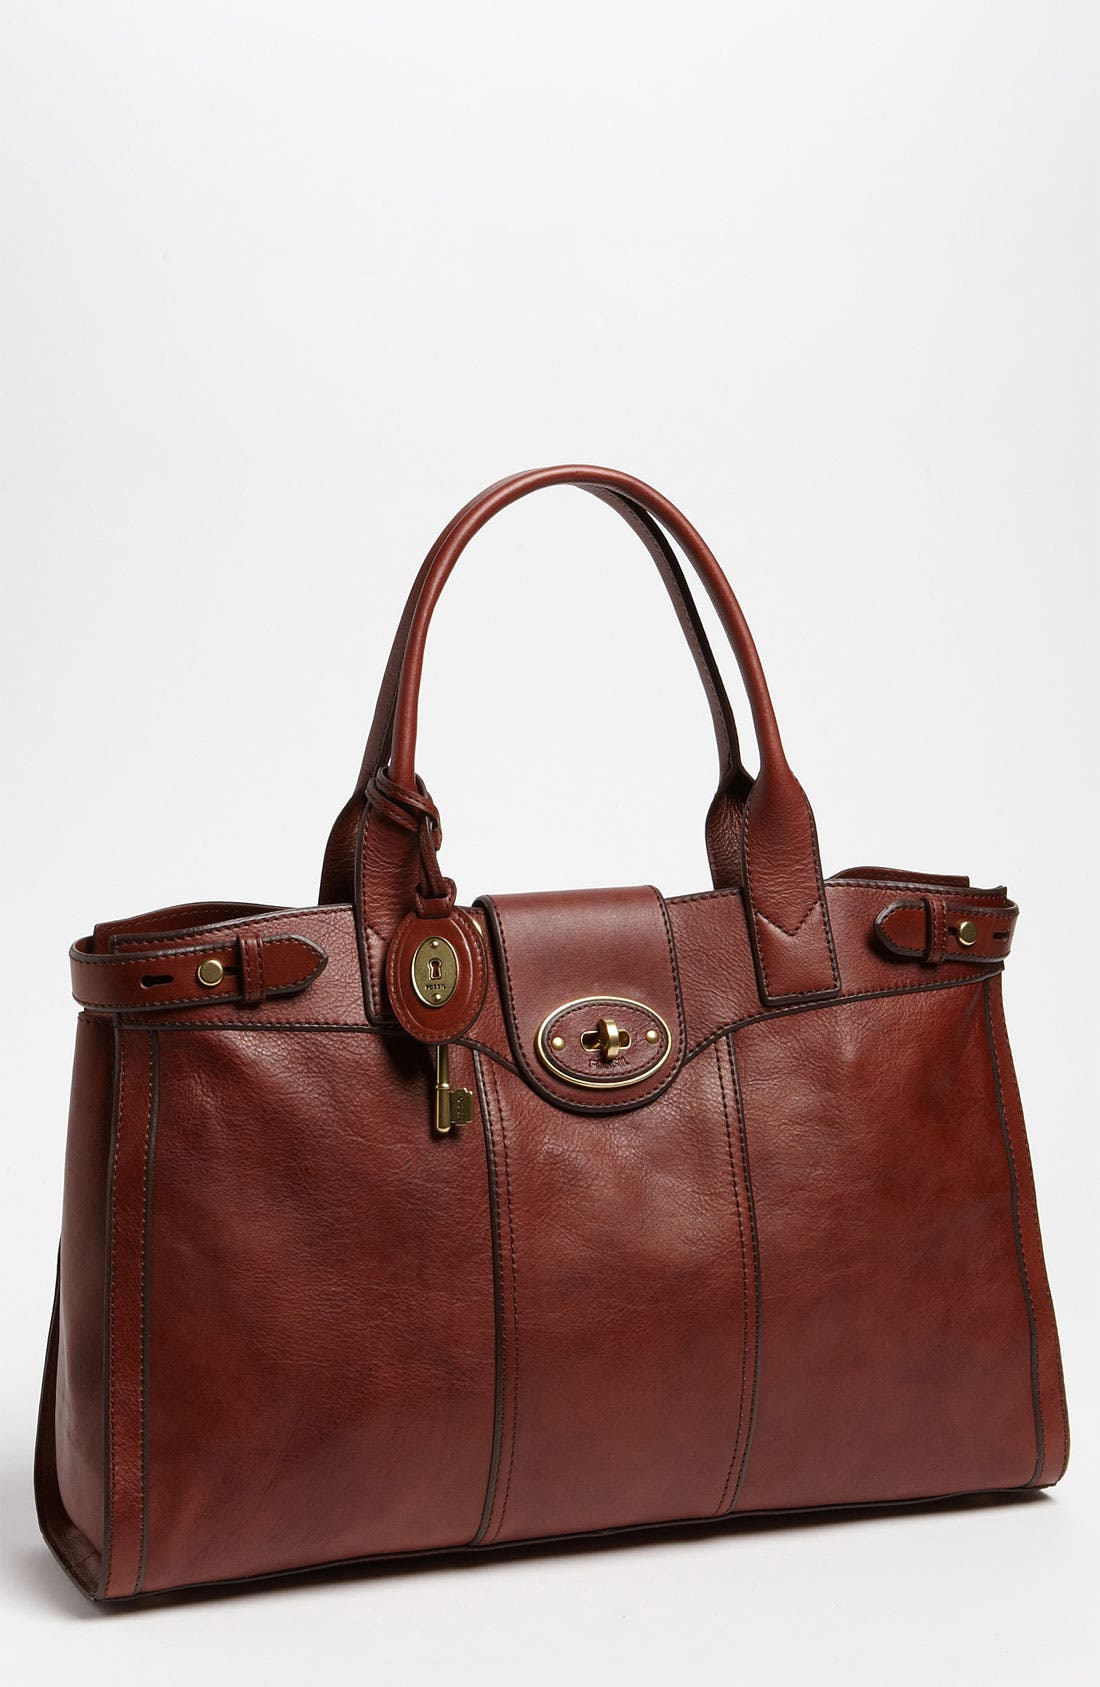 Main Image - Fossil 'Vintage Re-Issue' Bag